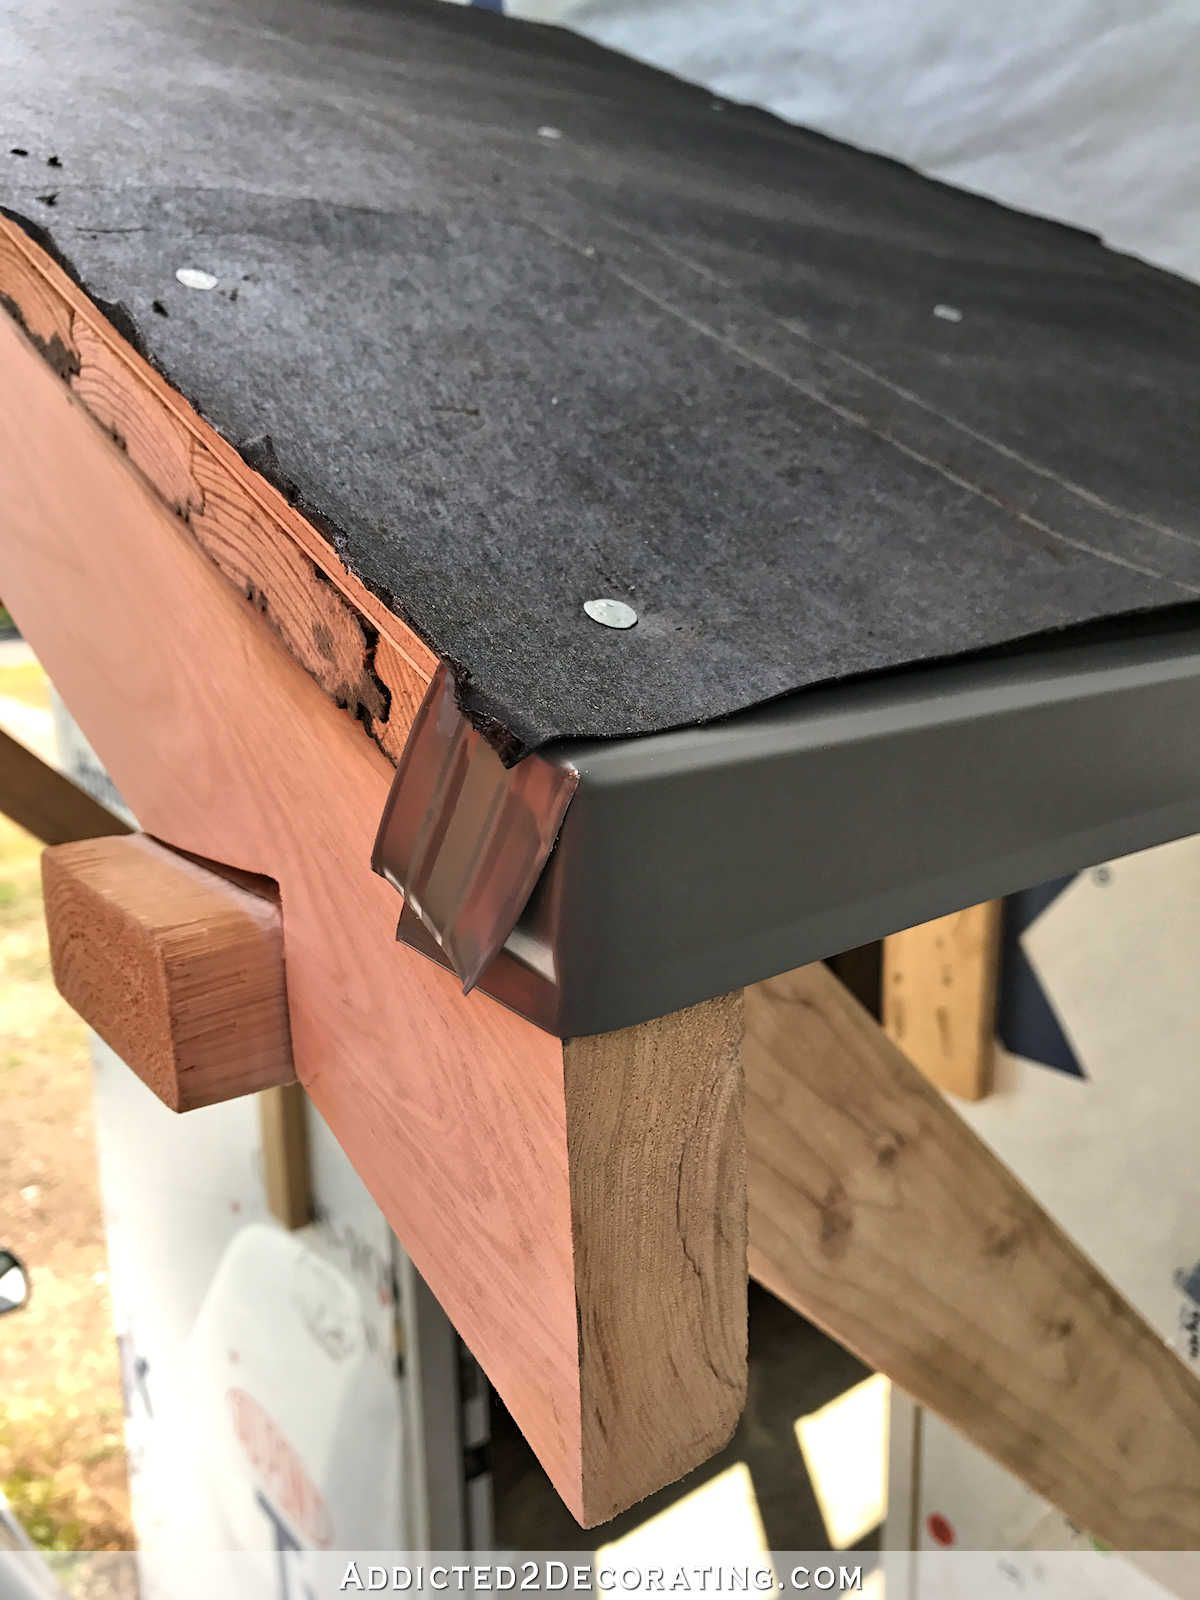 Diy Portico Part 2 Finishing The Ceiling The Roof Addicted 2 Decorating Portico Roof Edge Door Overhang